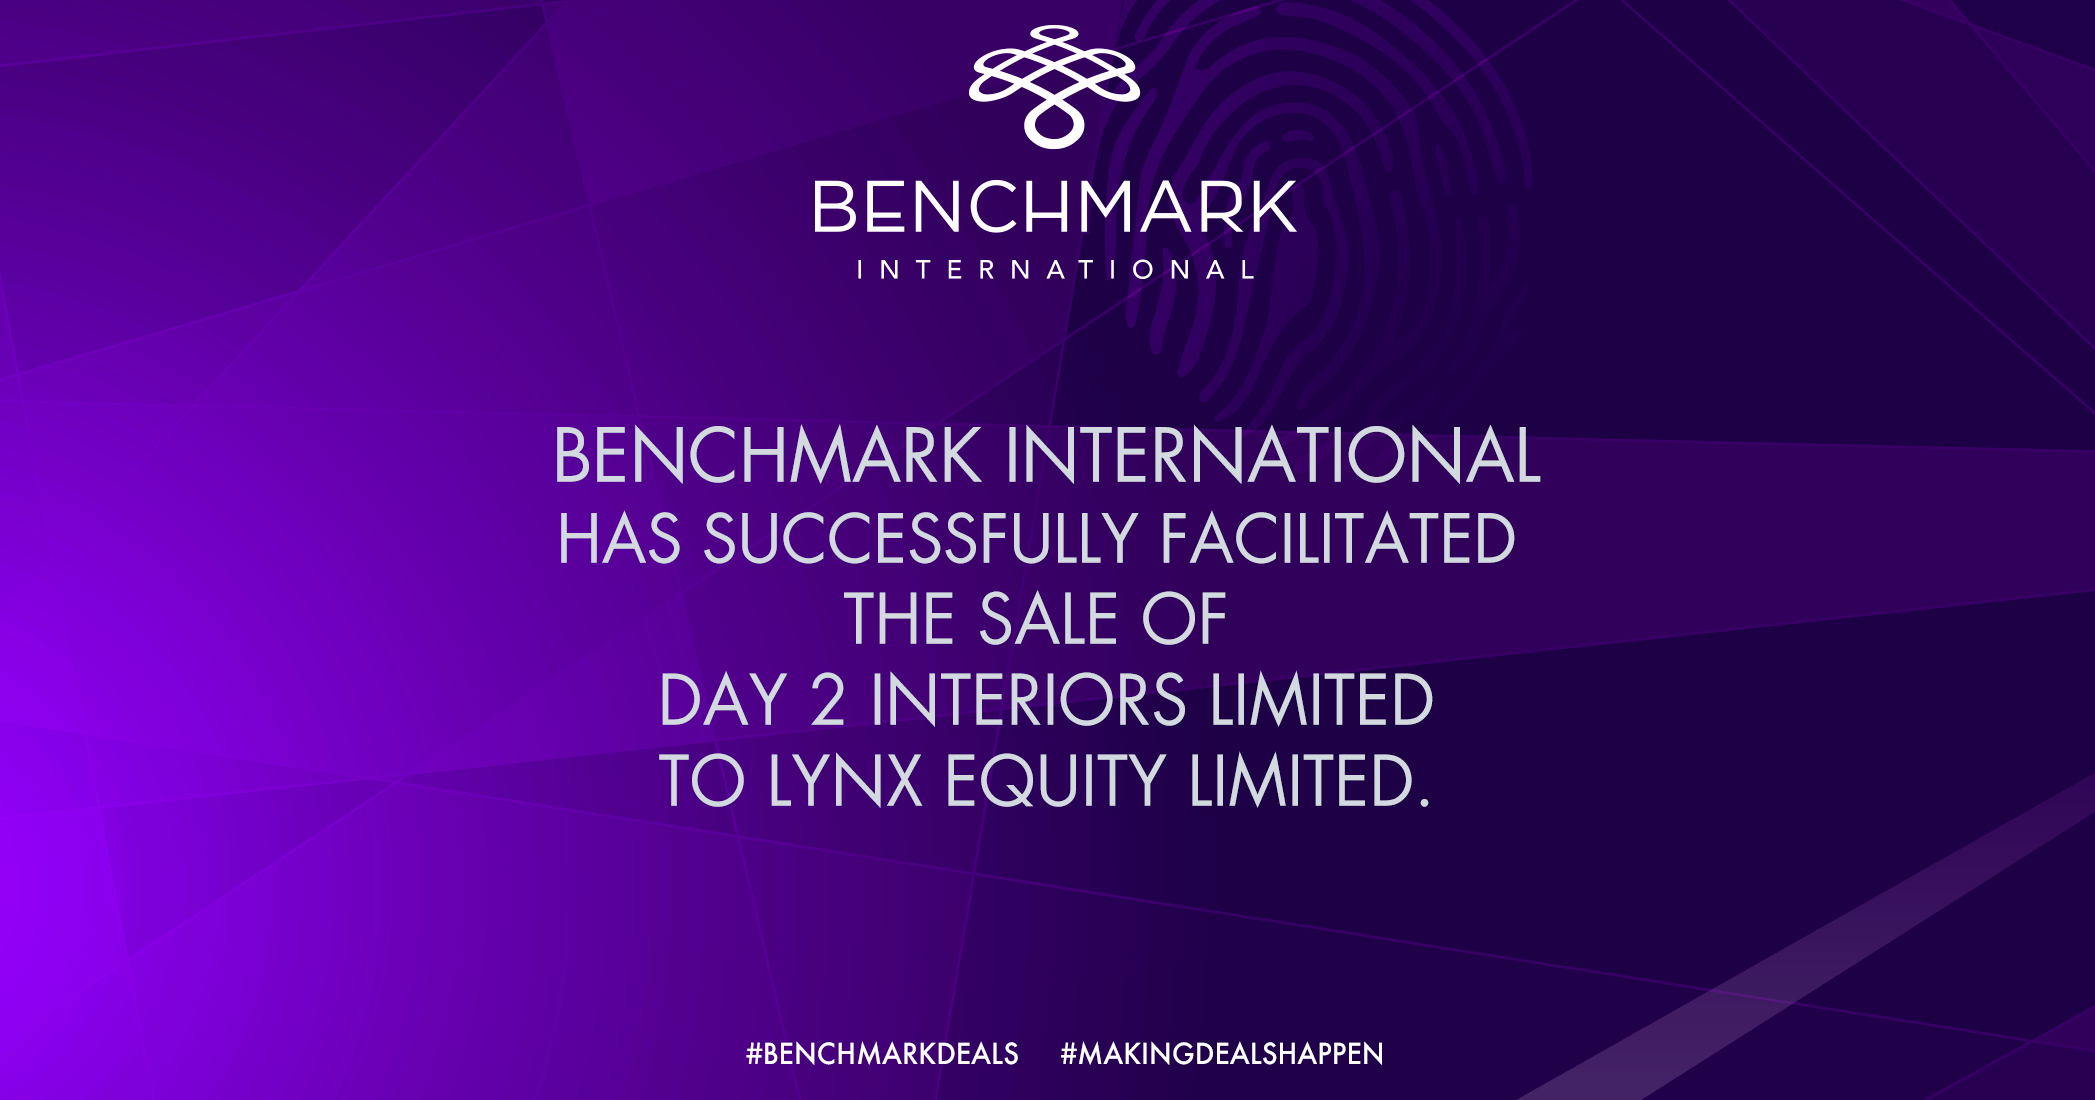 Benchmark International has Successfully Facilitated the Sale of Day 2 Interiors Limited to Lynx Equity Limited